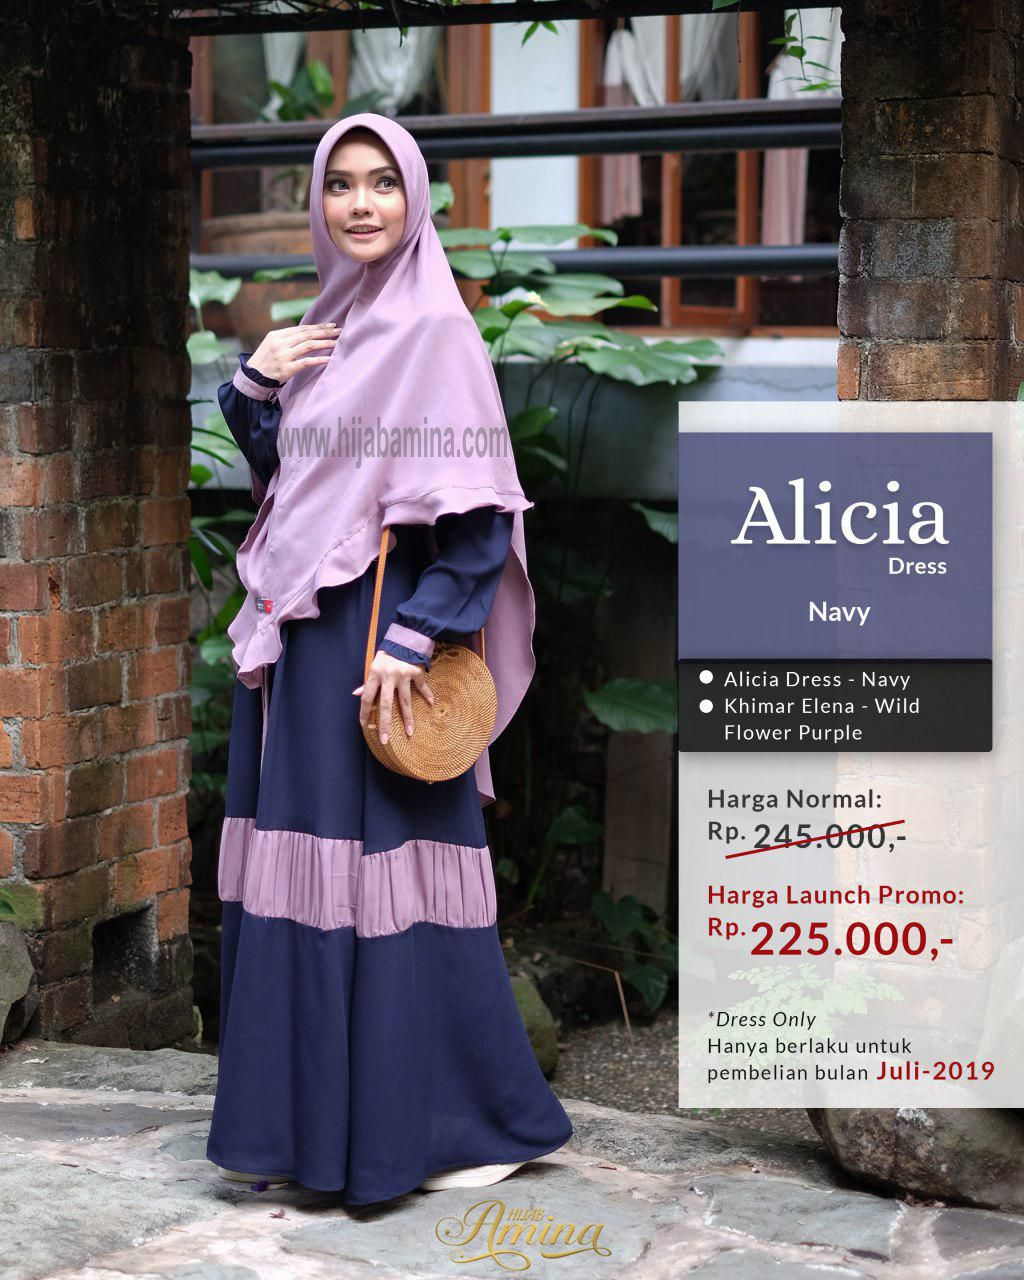 Alicia Dress – Navy